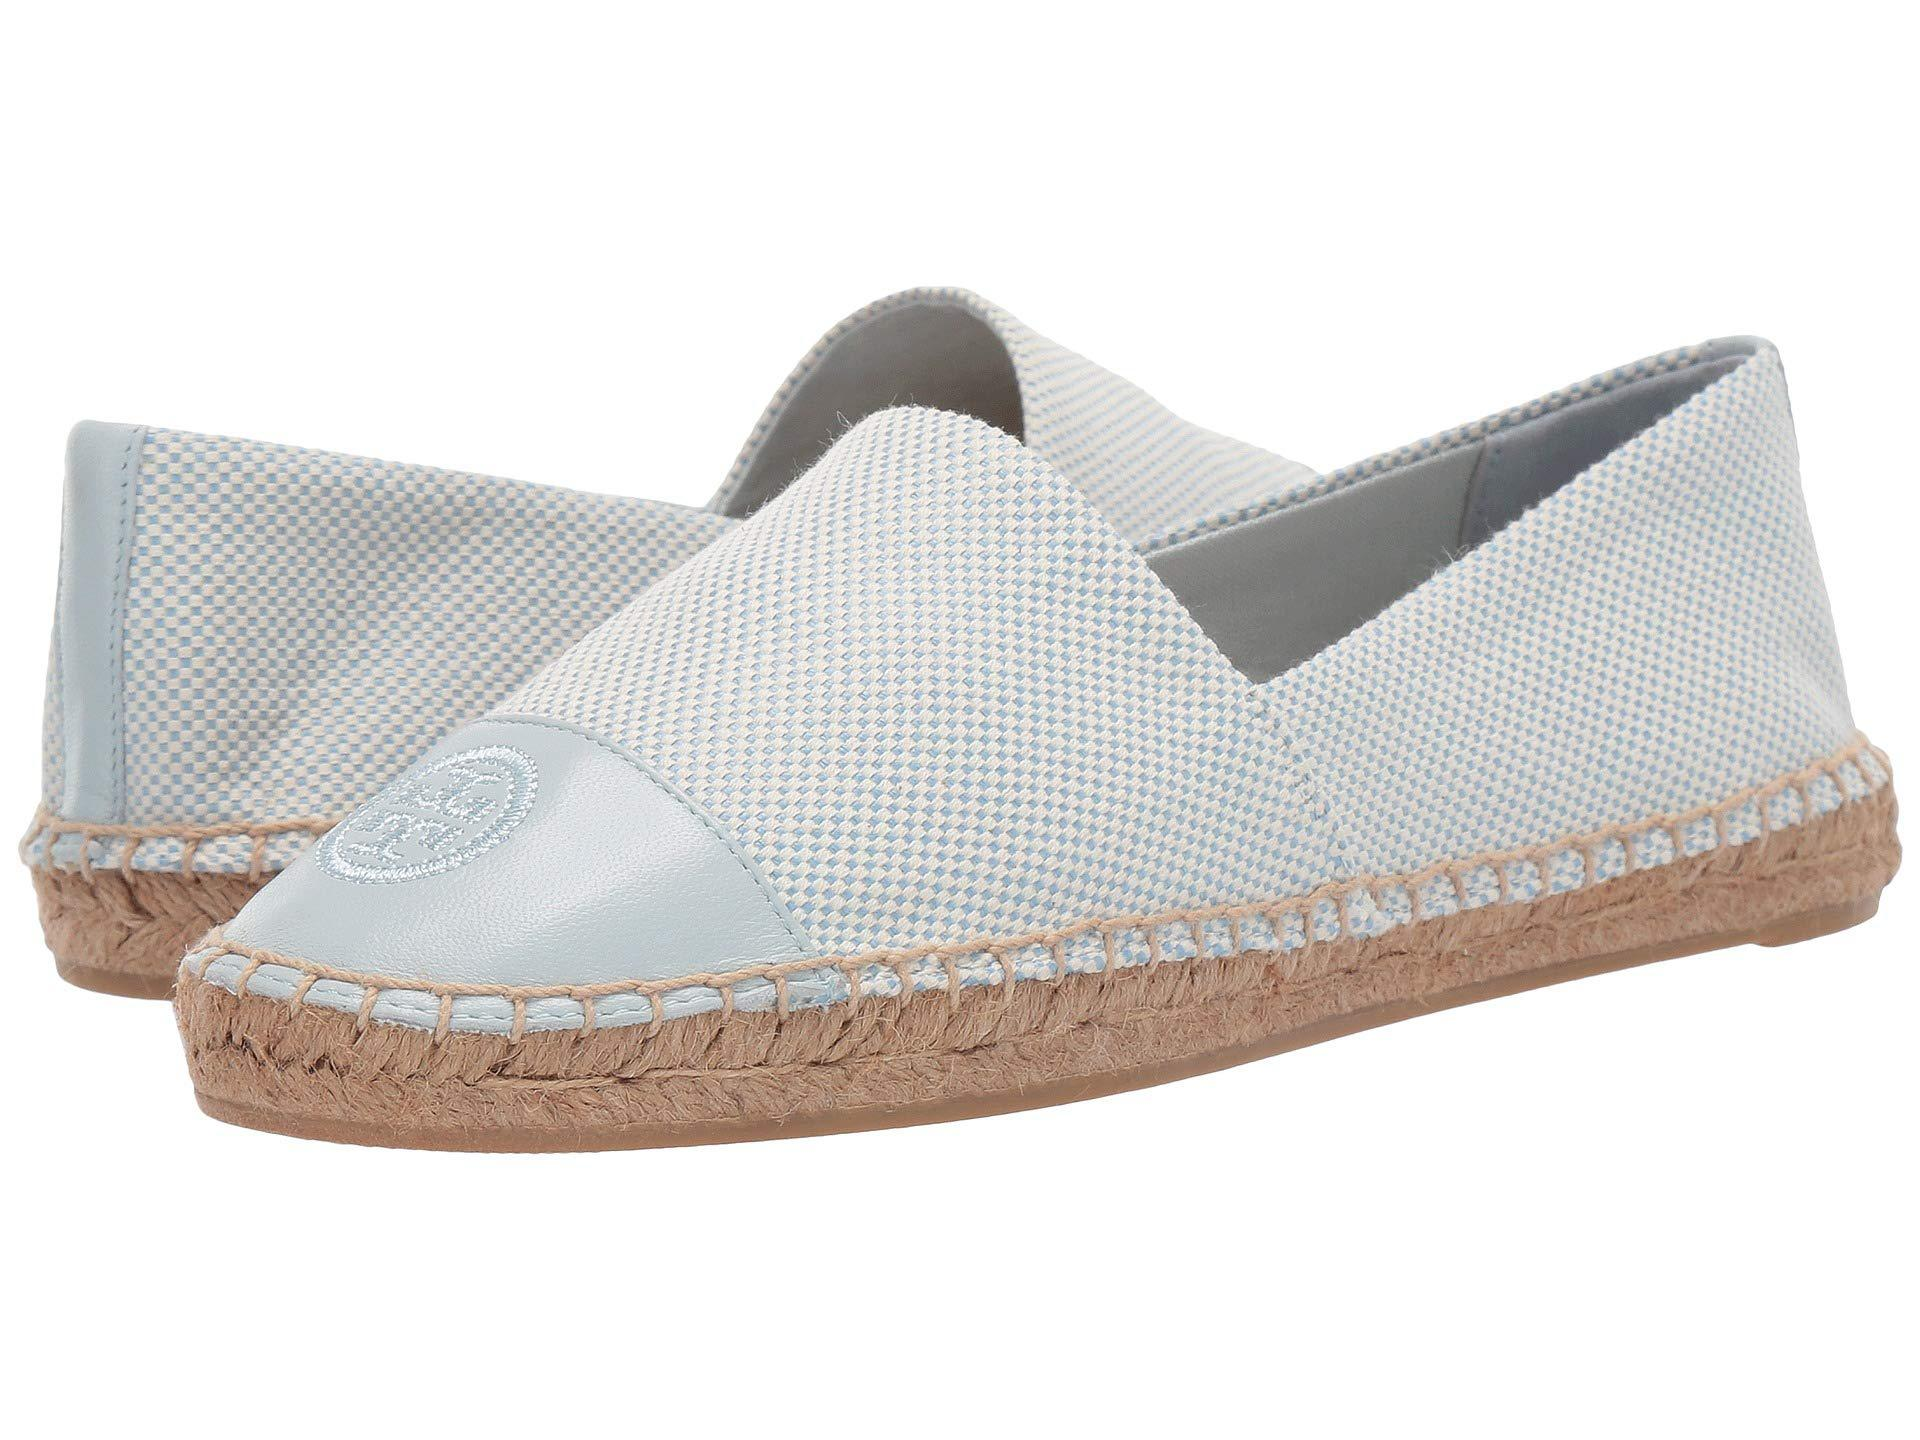 6172796238a1c0 Tory Burch - White Color Block Flat Espadrille (denim Chambray) Women s  Shoes - Lyst. View fullscreen